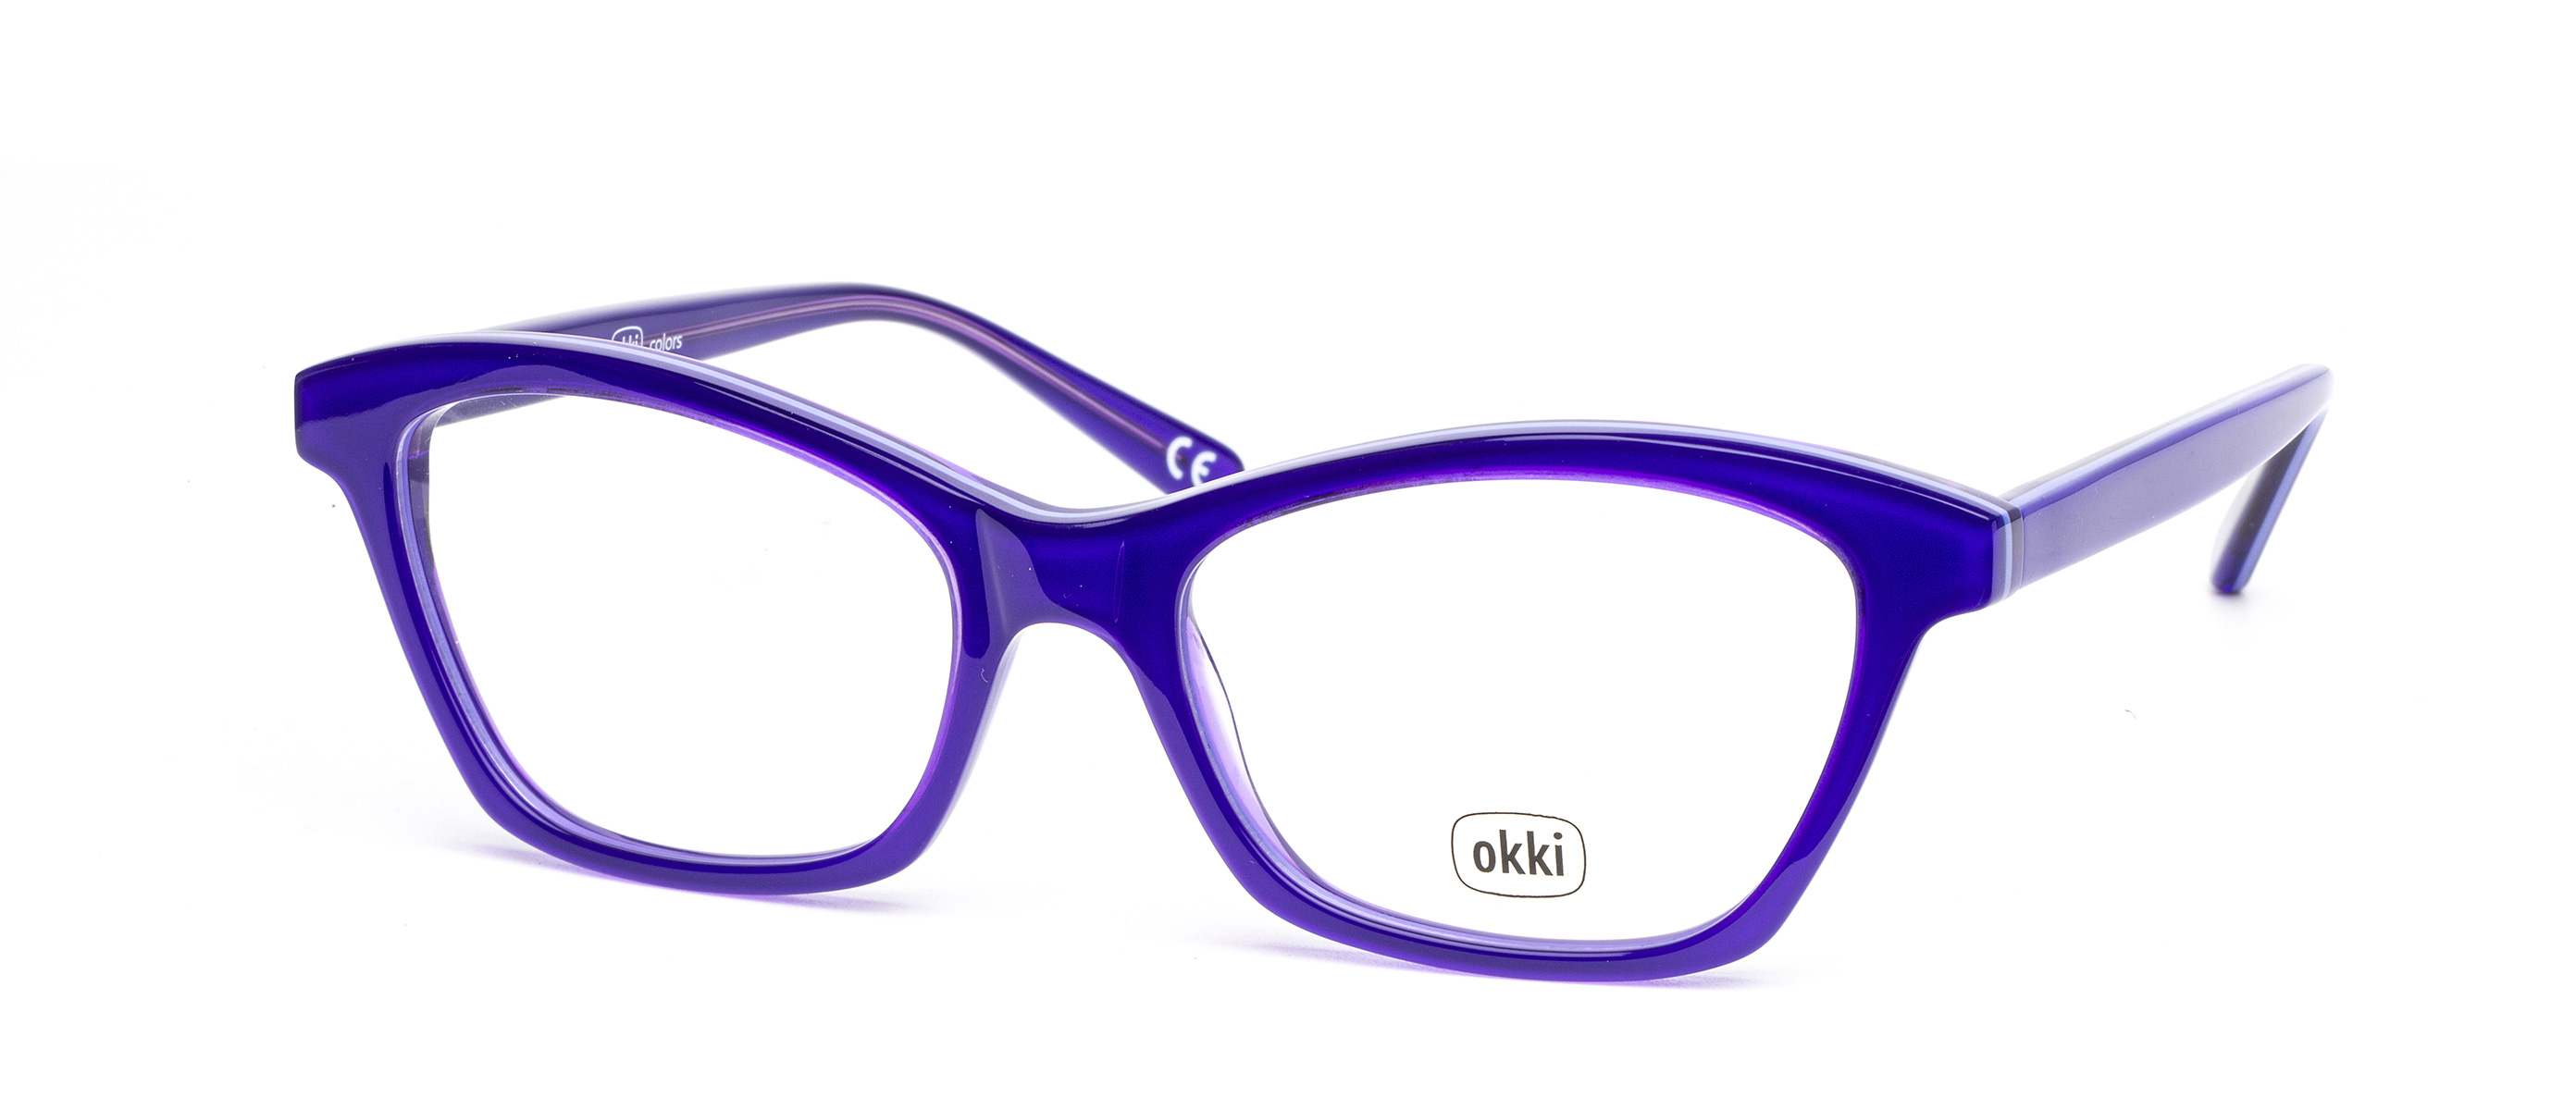 OKKI colors, the colored glasses by definition